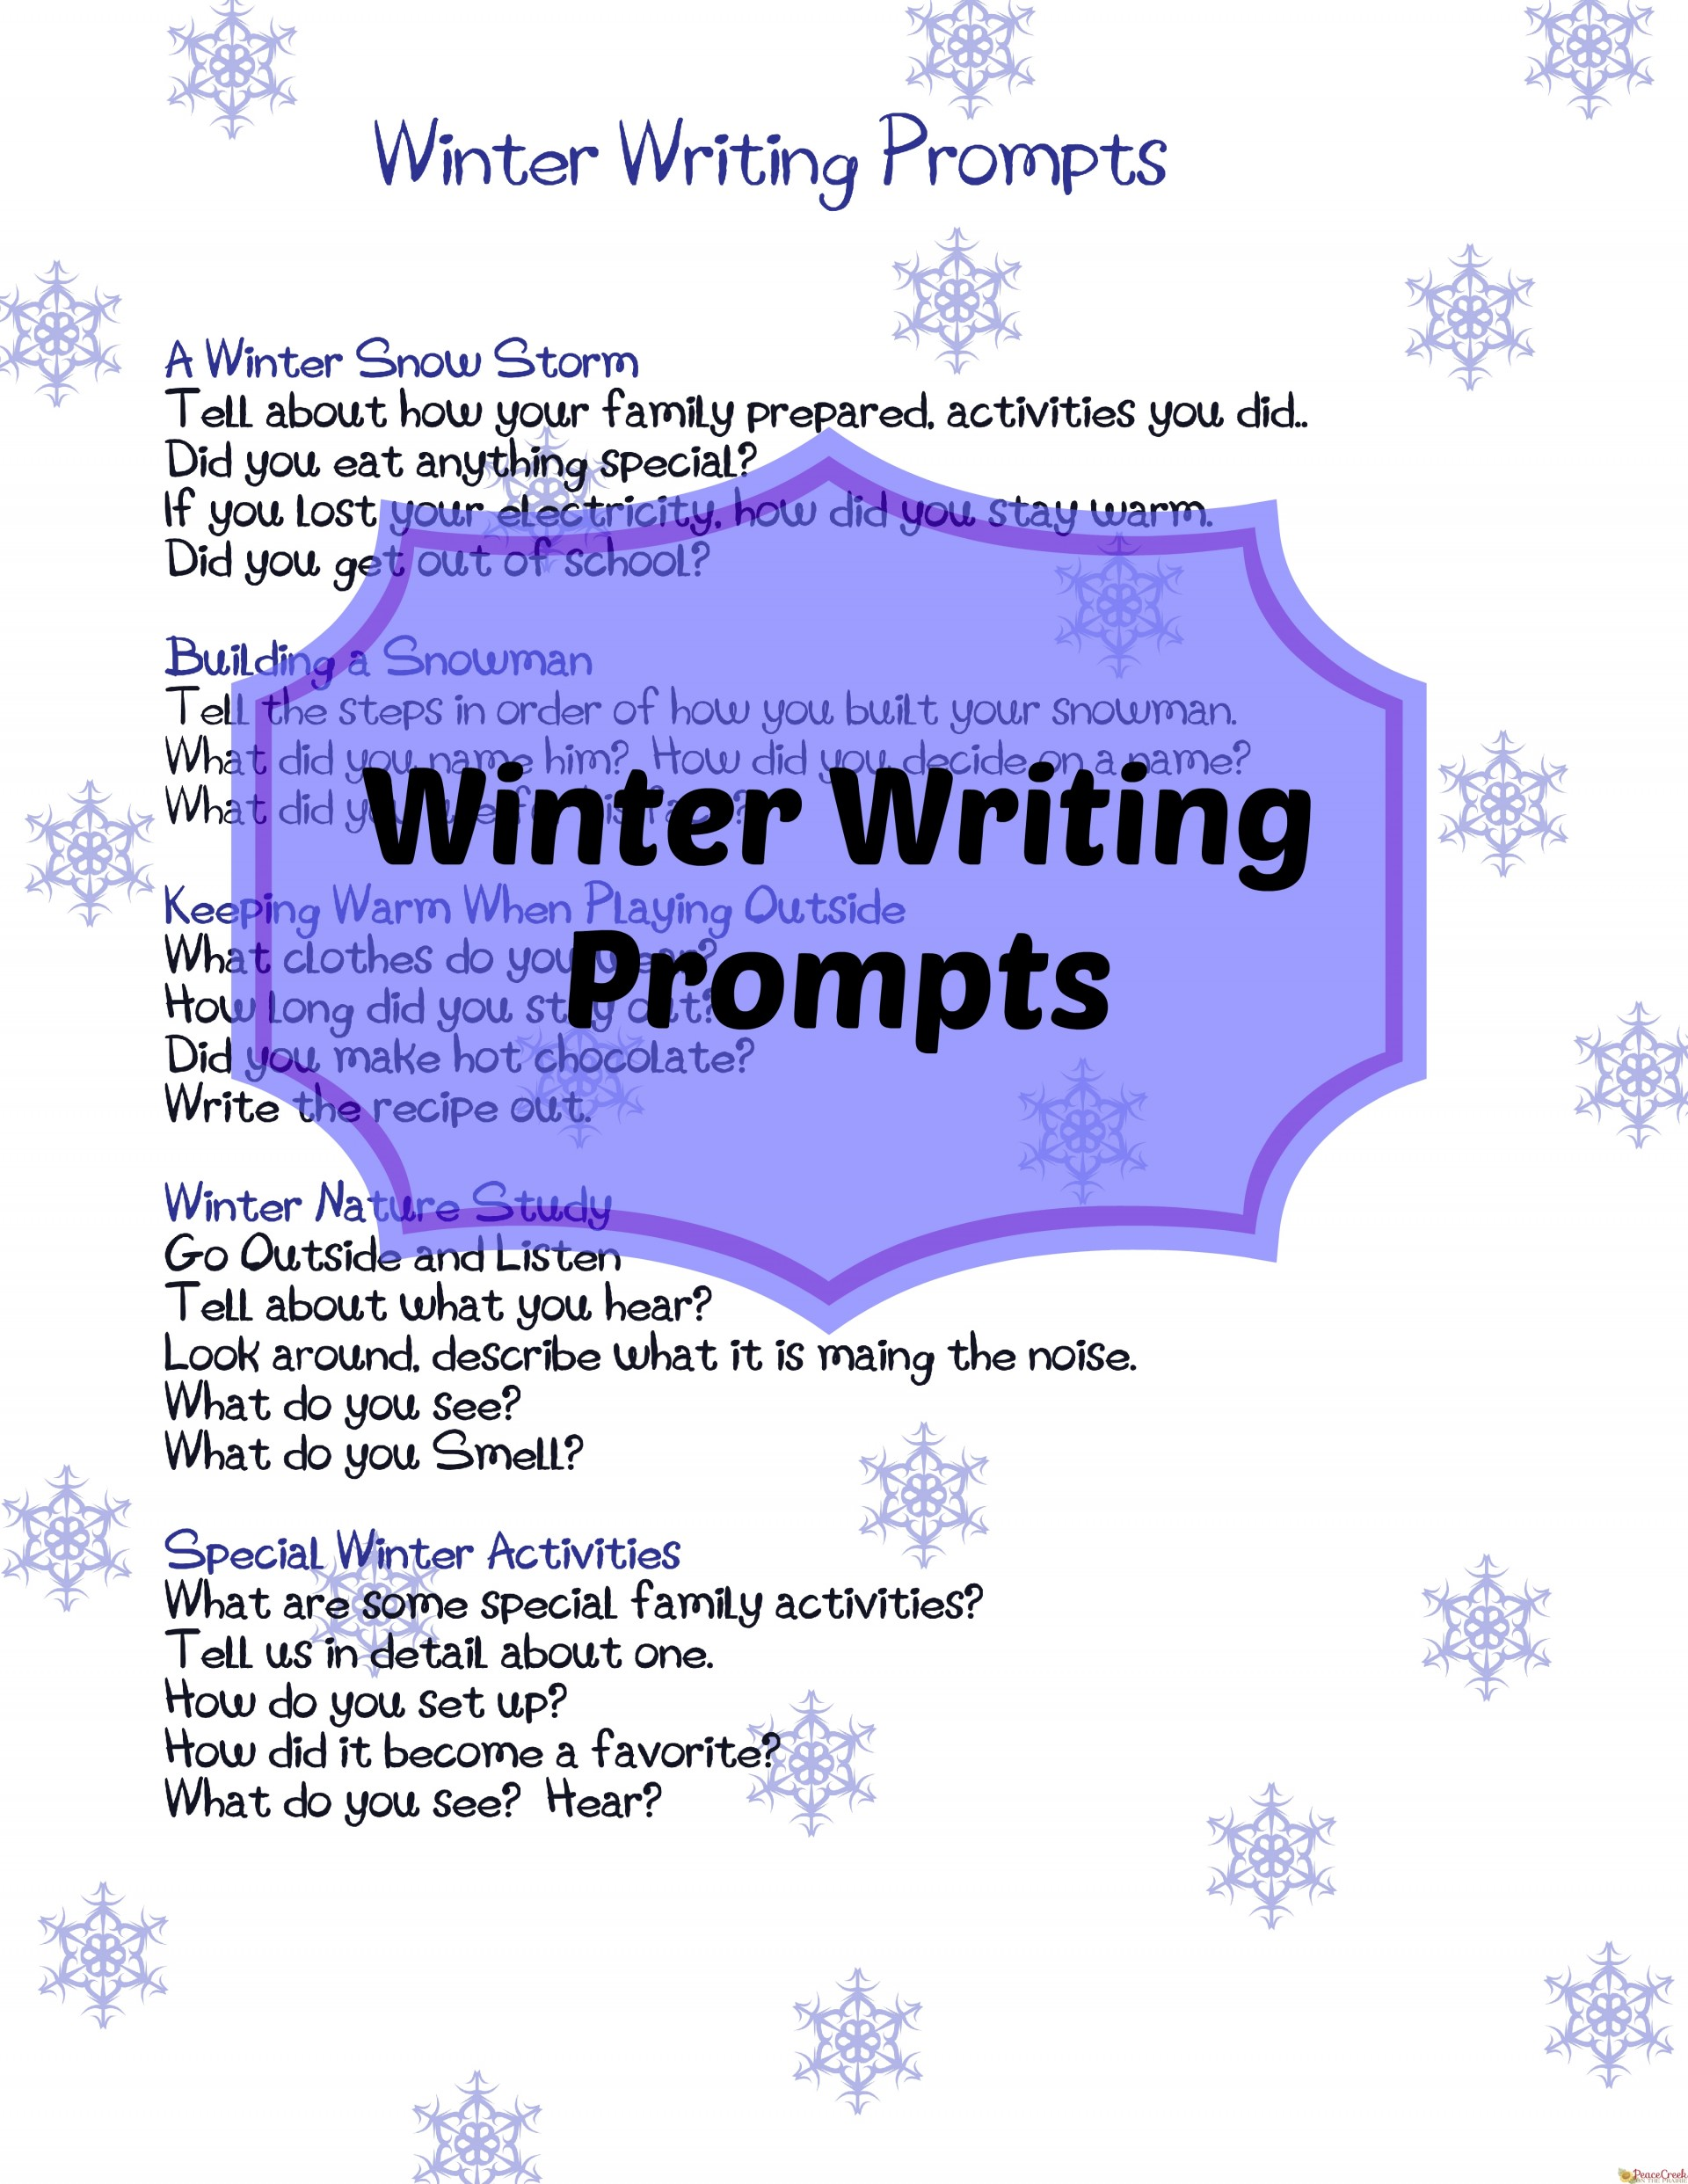 006 Essay Example Coalition Prompts Free Winter Writing Printable Peacecreekontheprairie Com College Sta Stanford Uc Harvard Examples List For Csu Texas Stunning Prompt 1 2018-19 1920